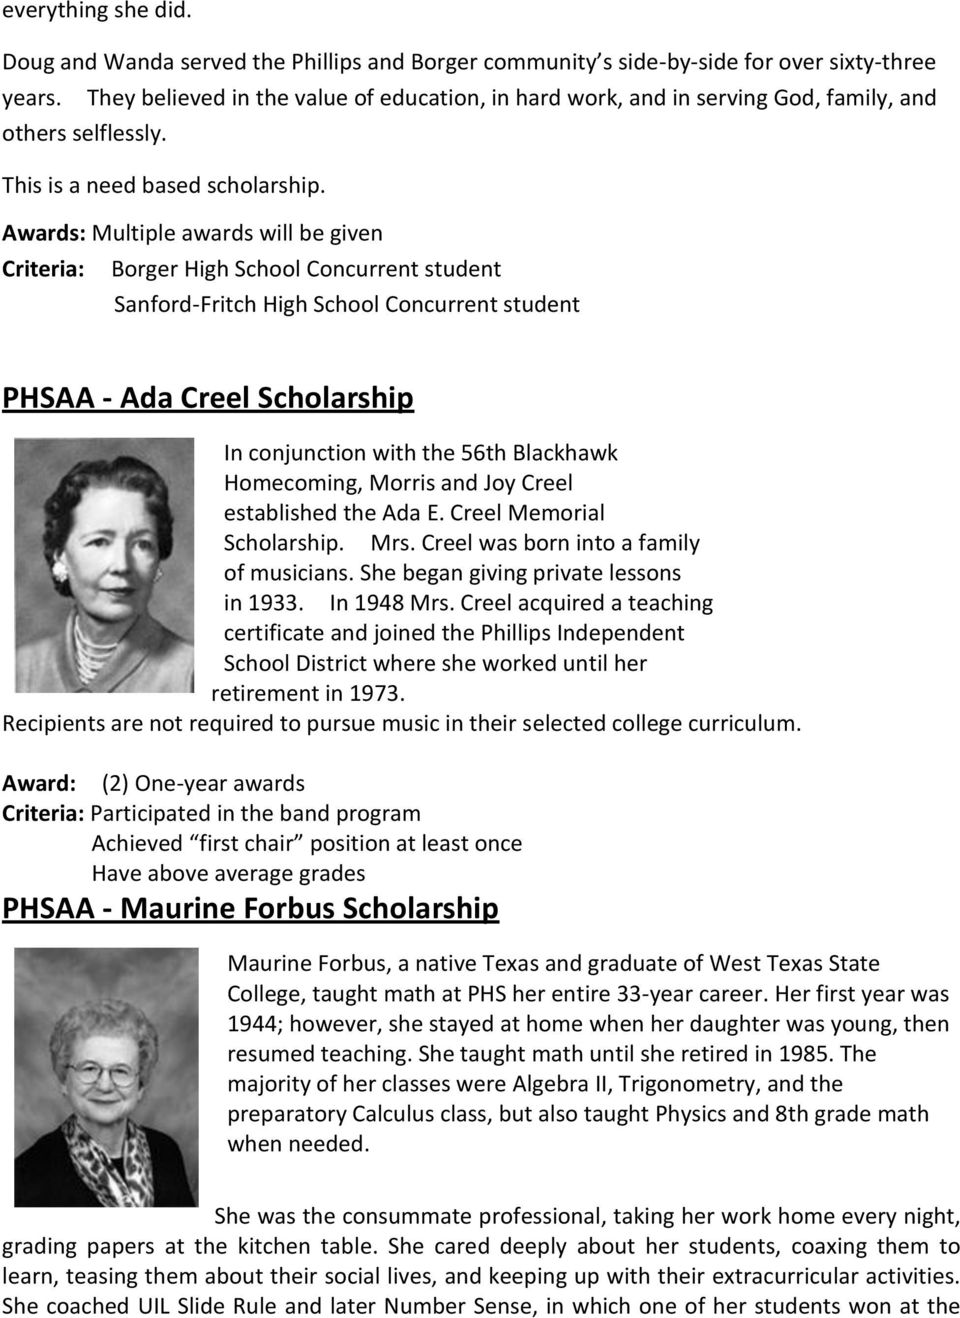 Awards: Multiple awards will be given Criteria: Borger High School Concurrent student Sanford-Fritch High School Concurrent student PHSAA - Ada Creel Scholarship In conjunction with the 56th